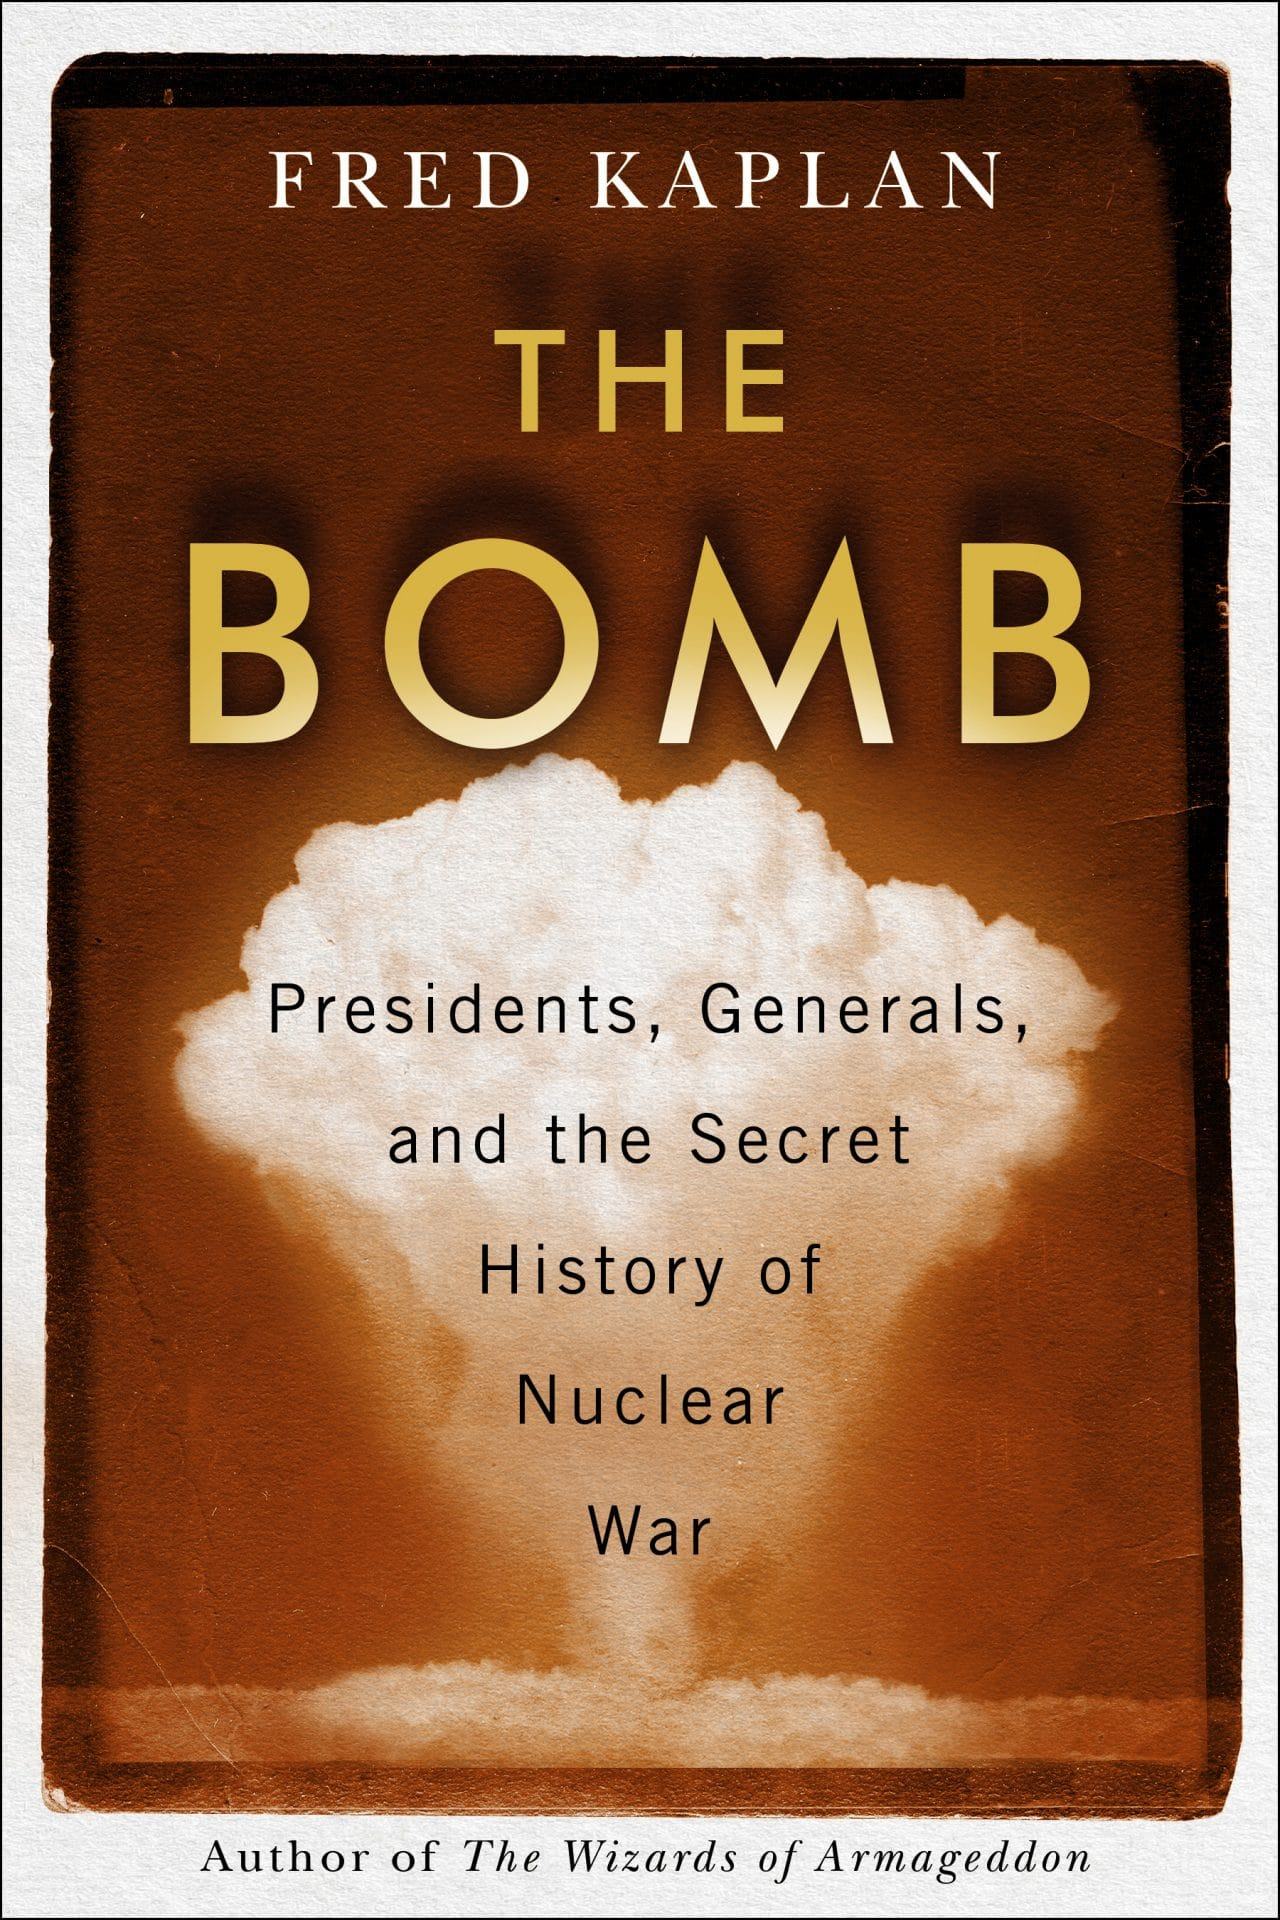 Book cover of The Bomb, by Fred Kaplan